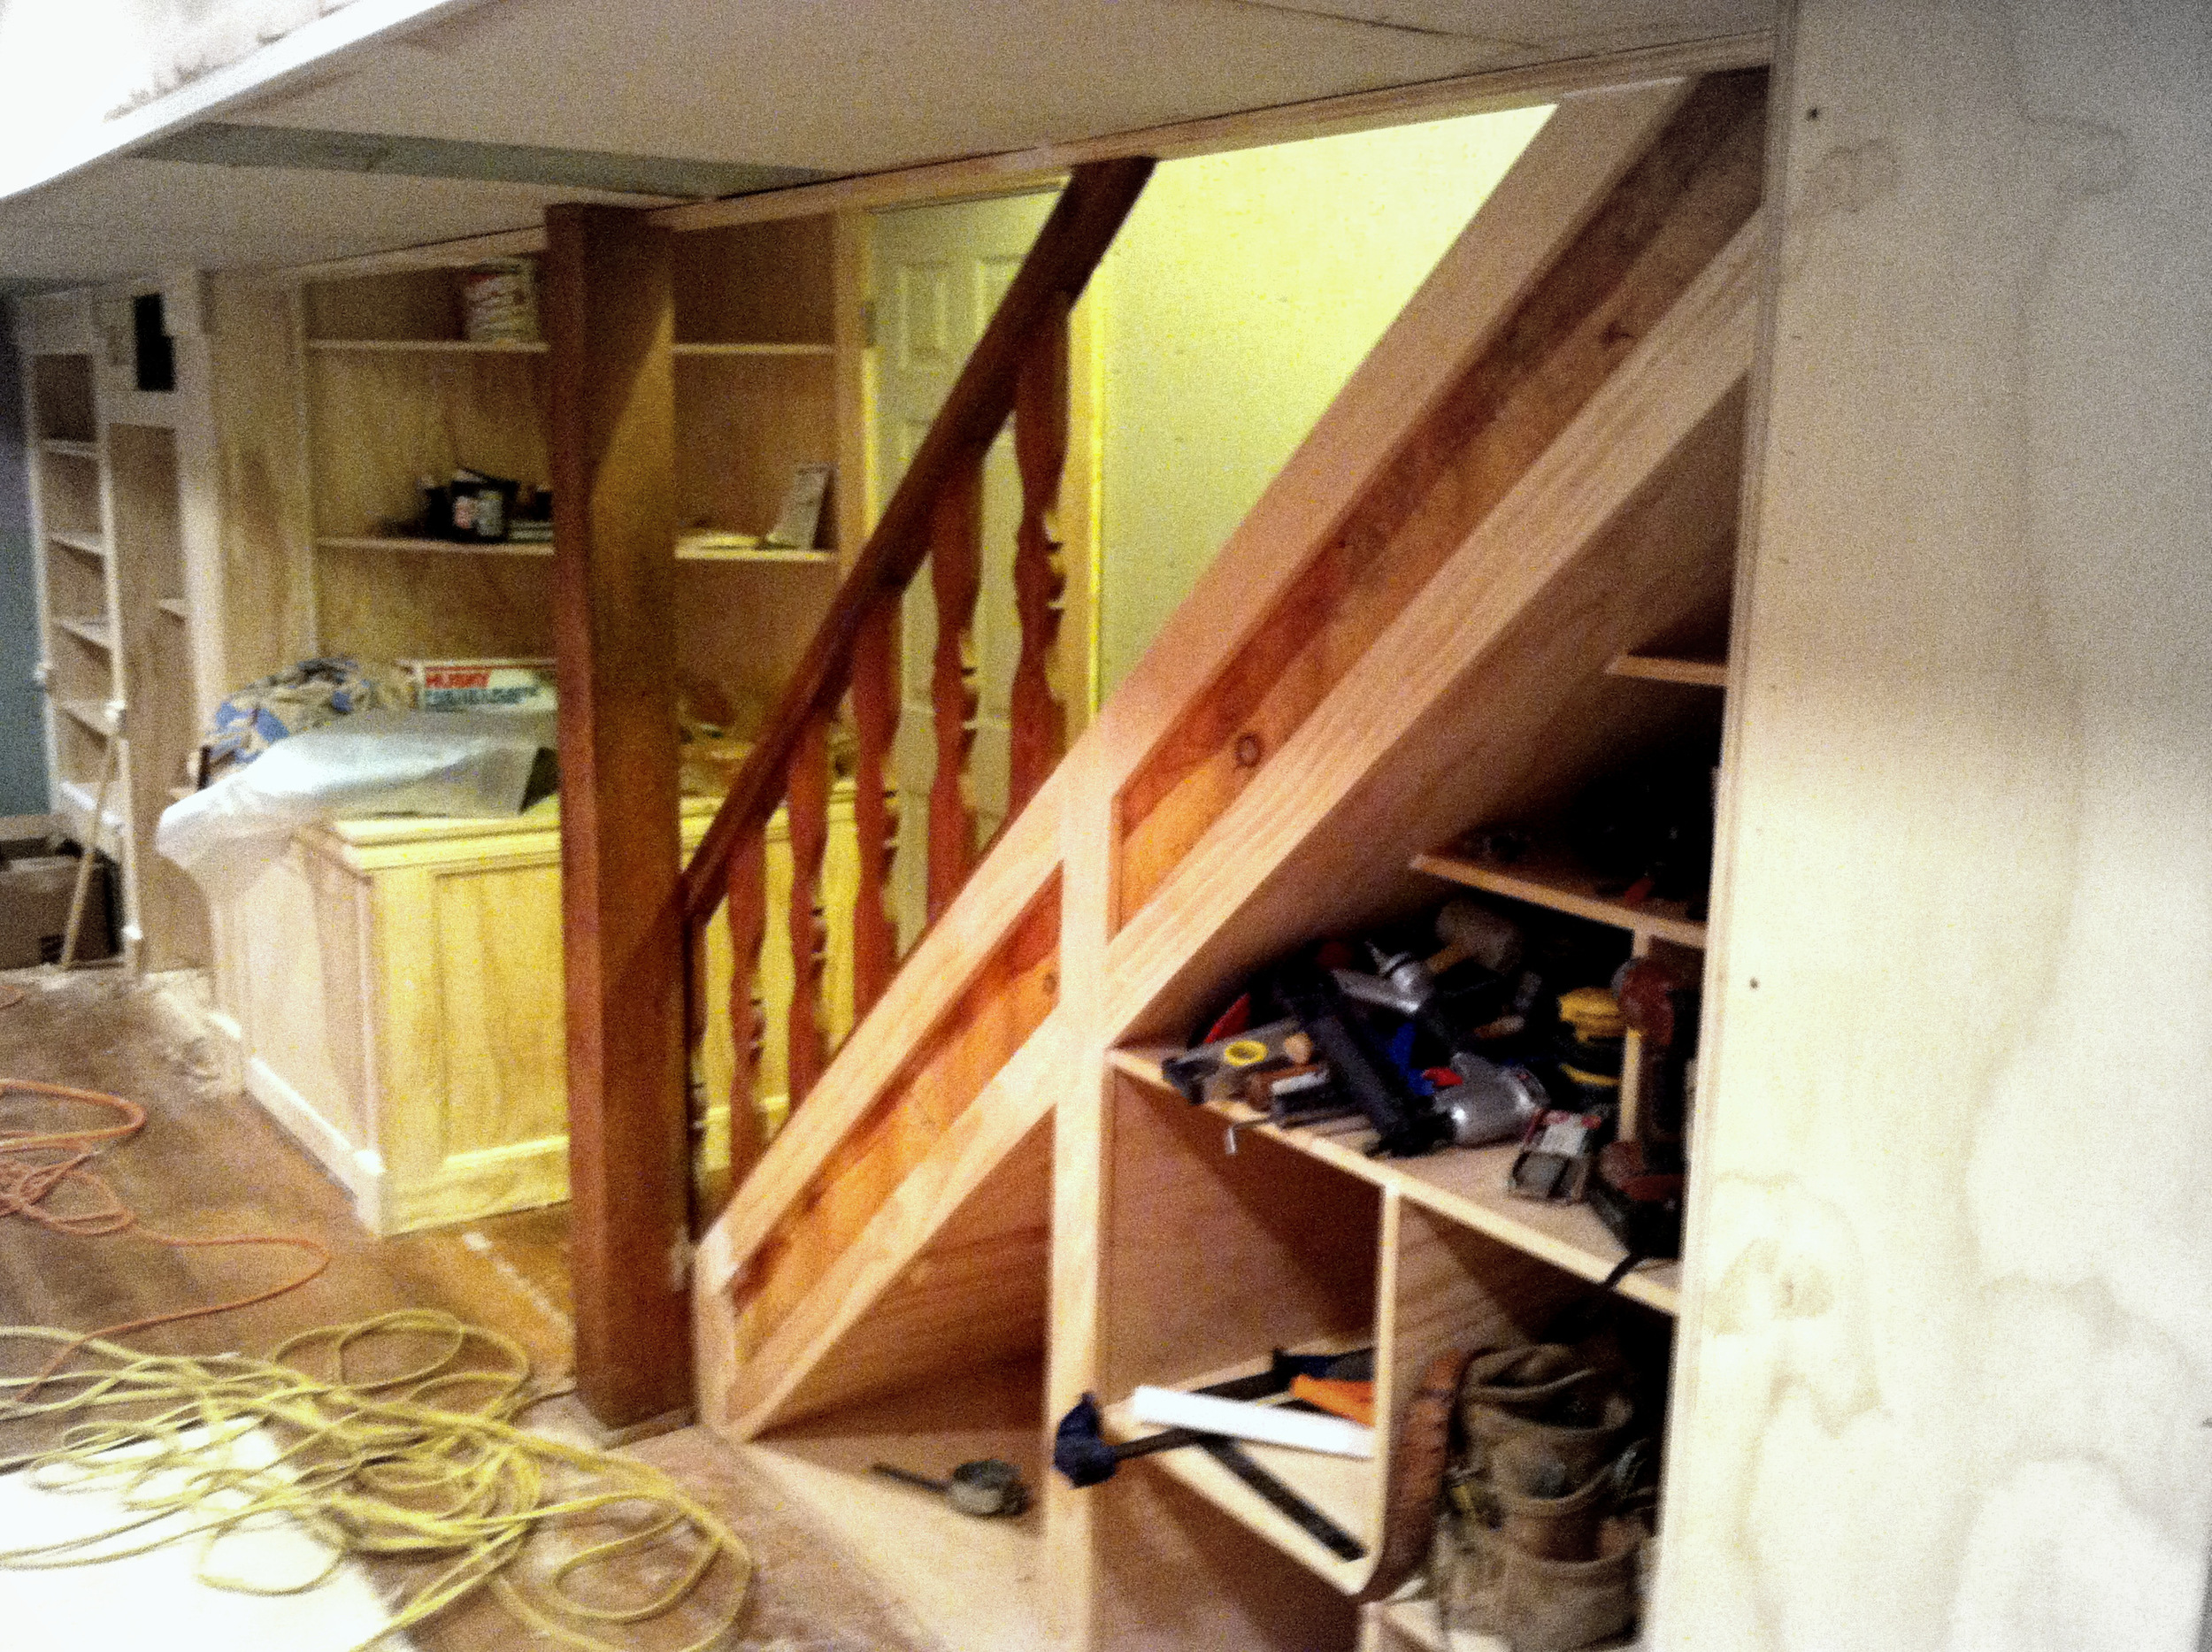 New basement stairs constructed with storage nooks below